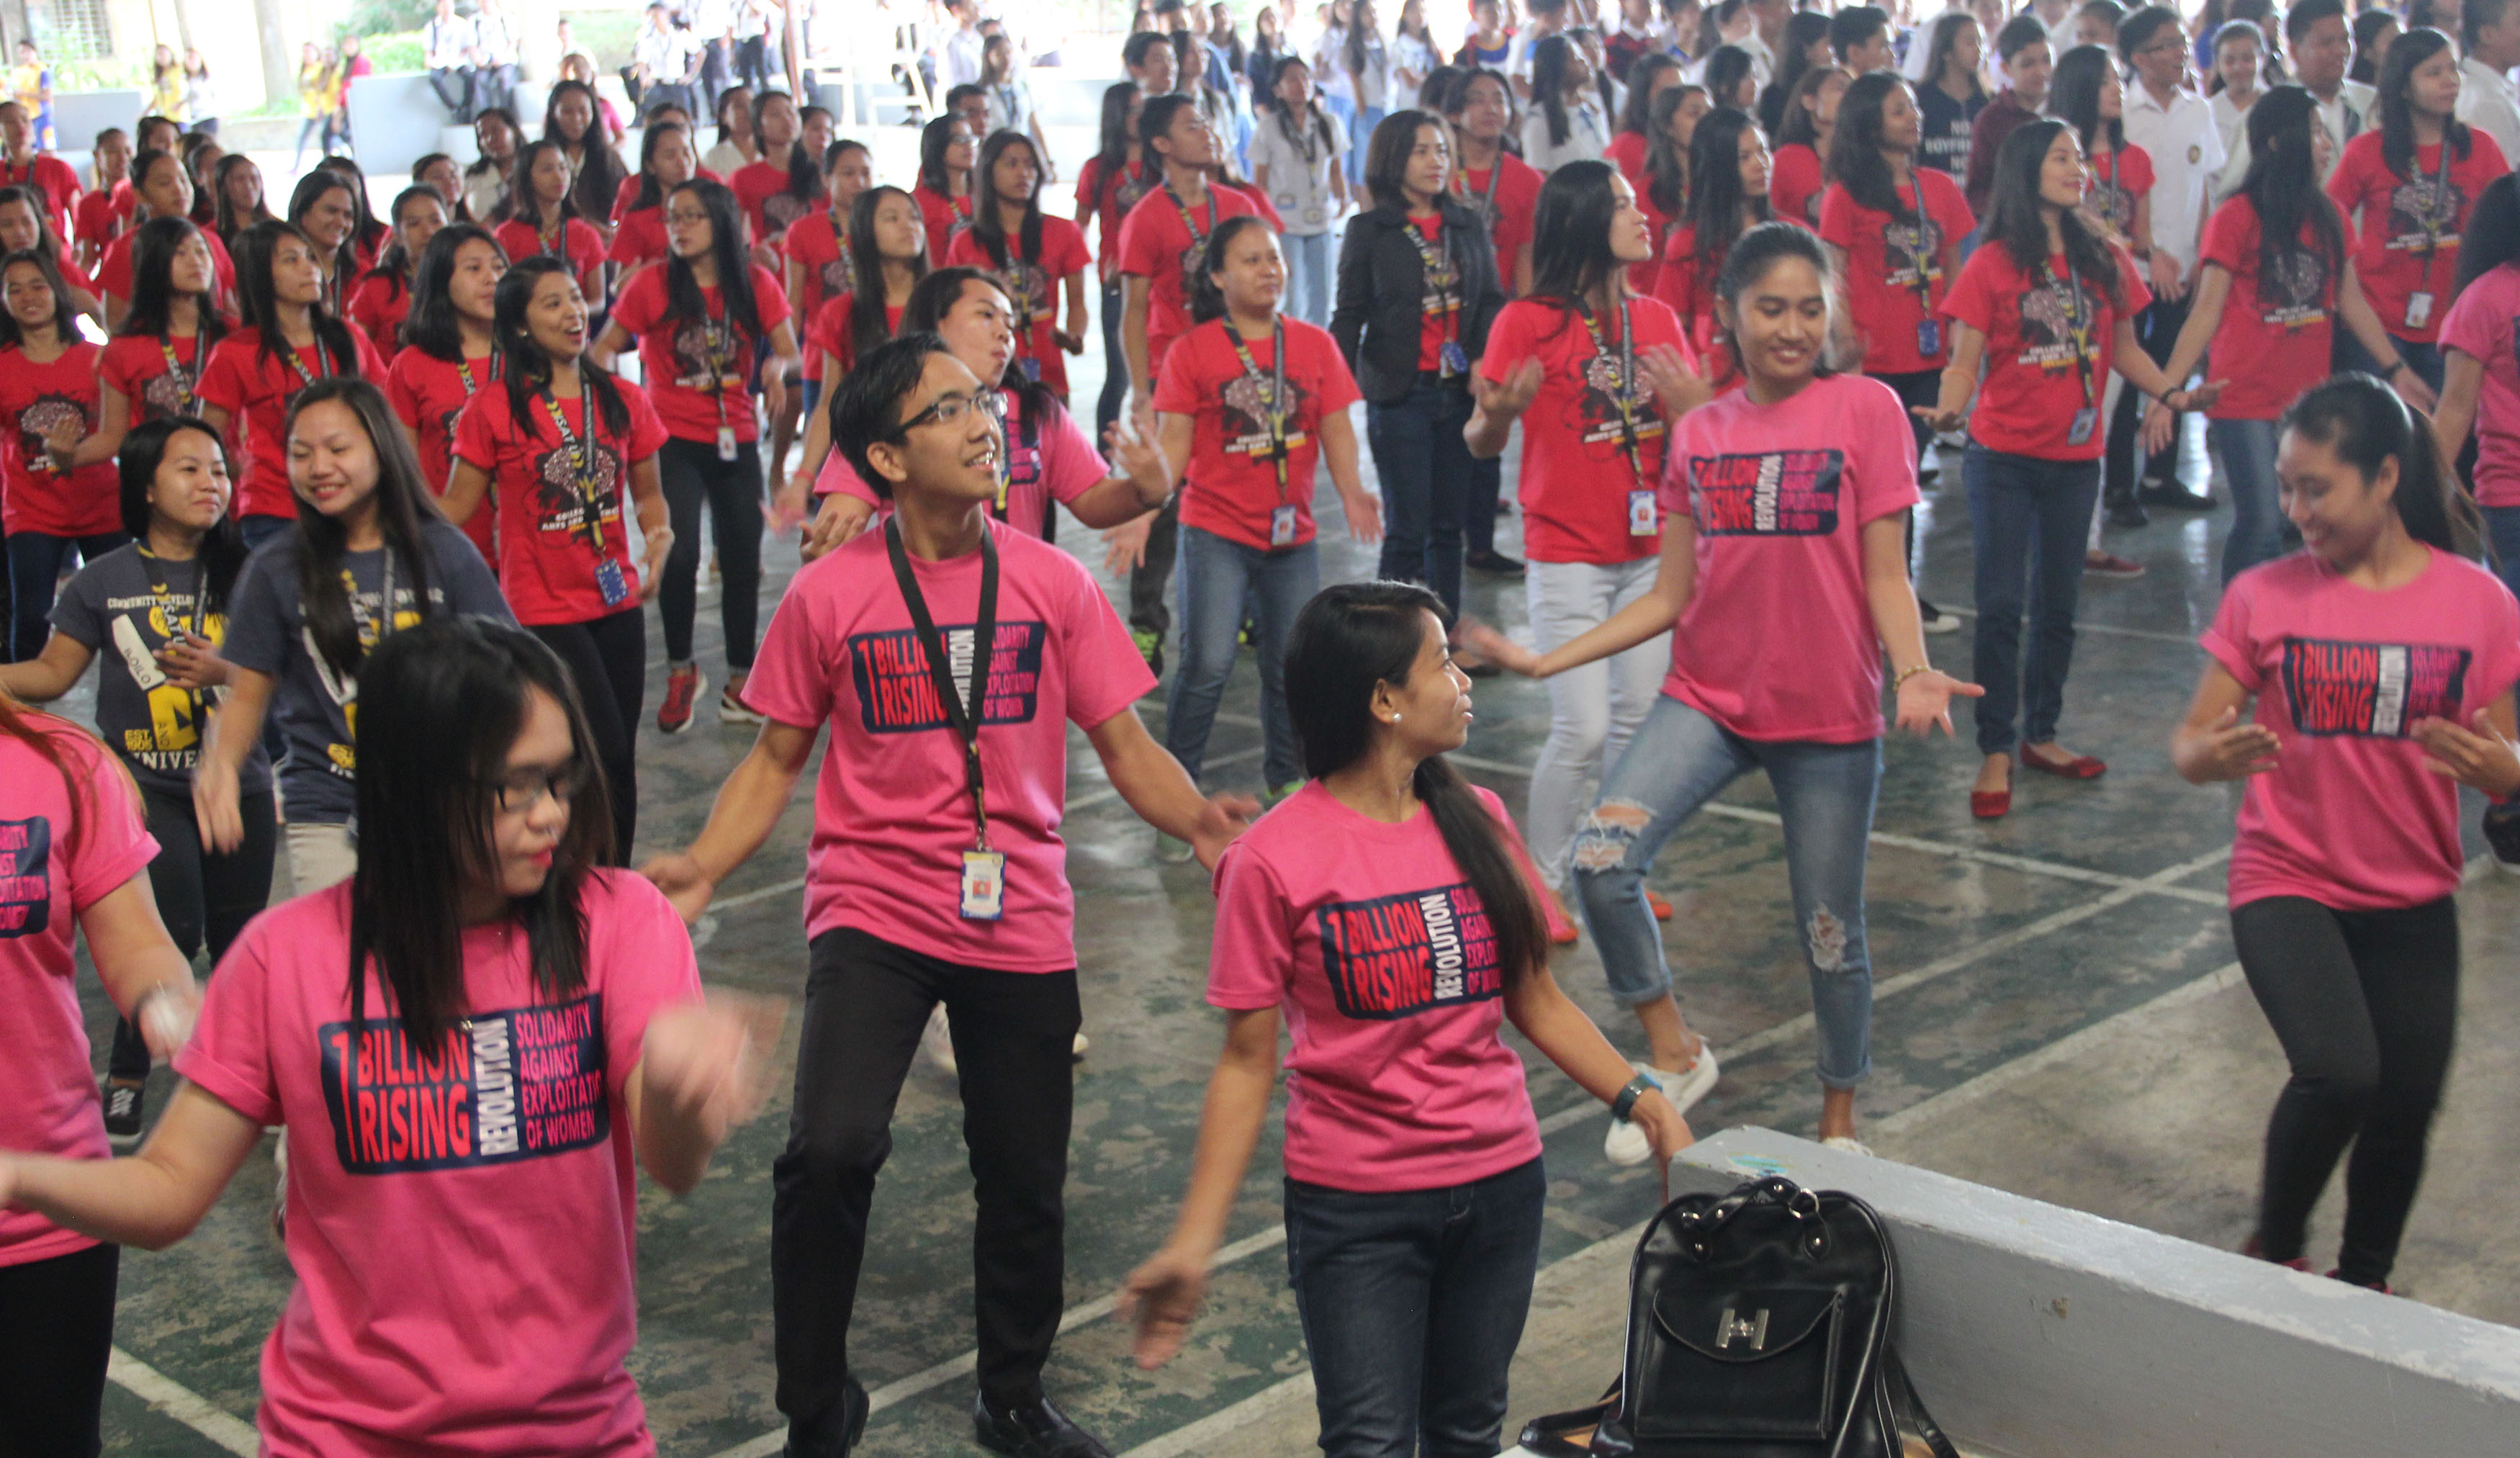 """Dancing to the tune of """"Isang Bilyon"""", the students join in 1 Billion Rising Revolution solidarity against exploitation of women."""